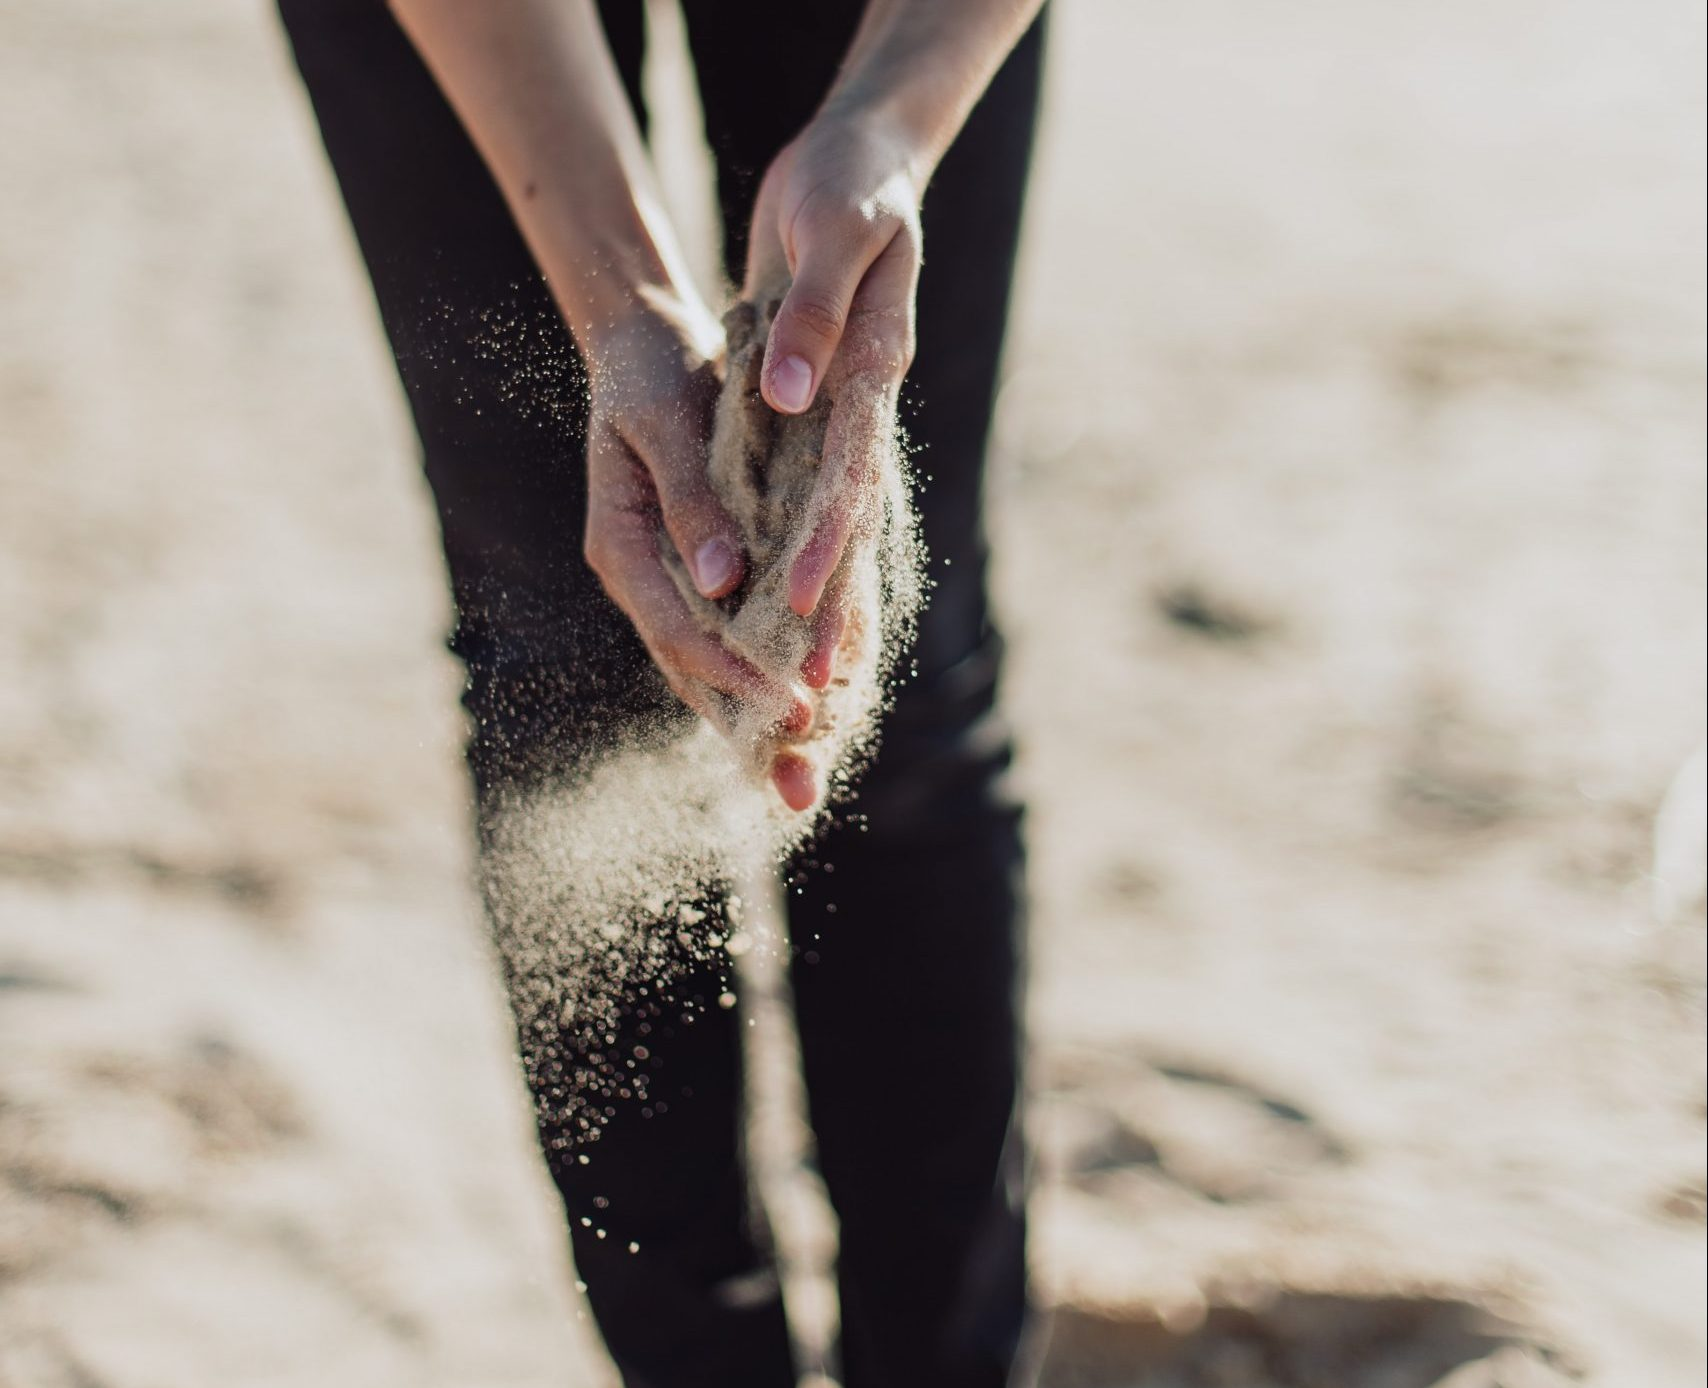 sand slipping through hands